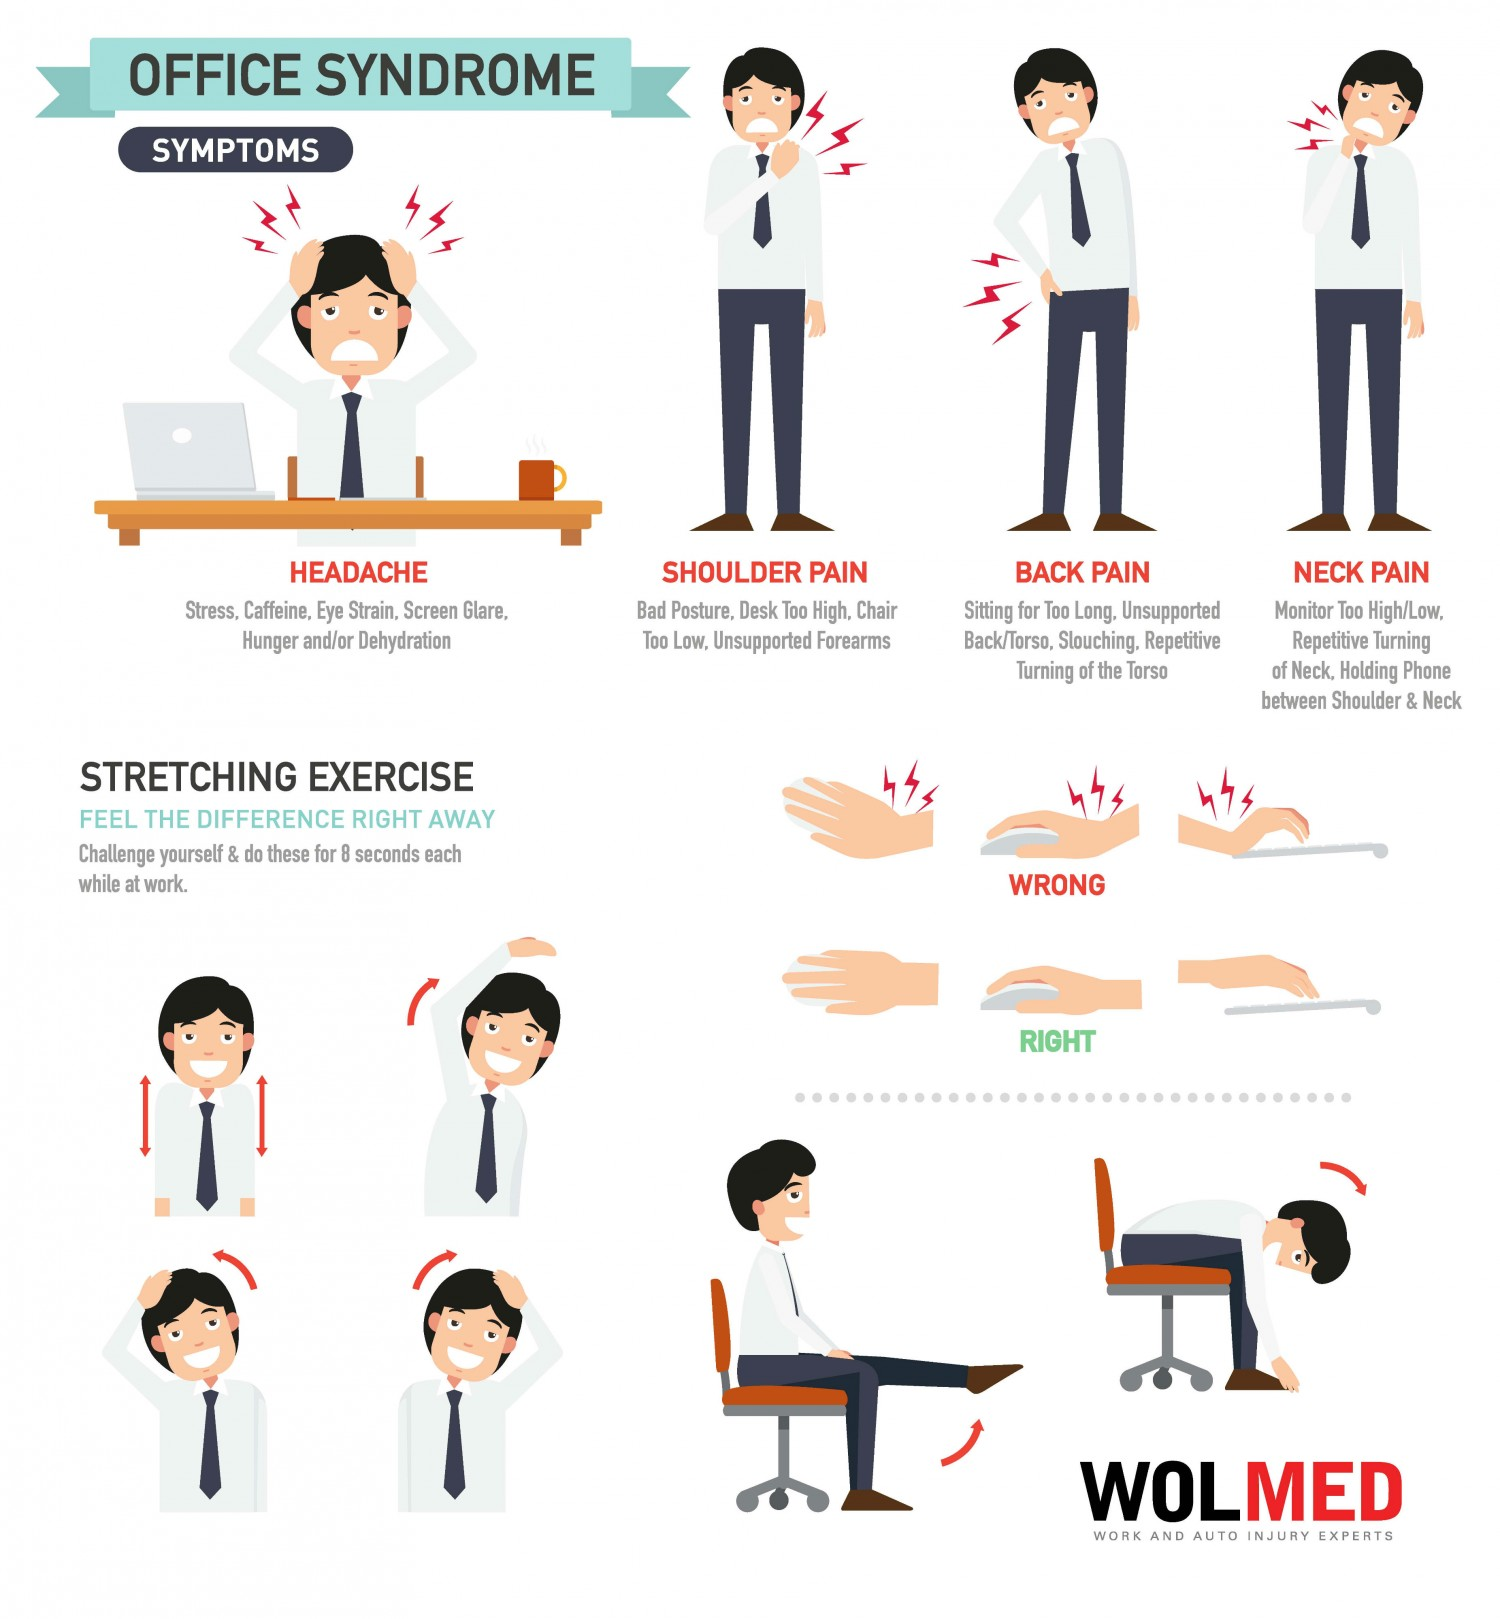 Office Syndrome: Causes and Symptoms